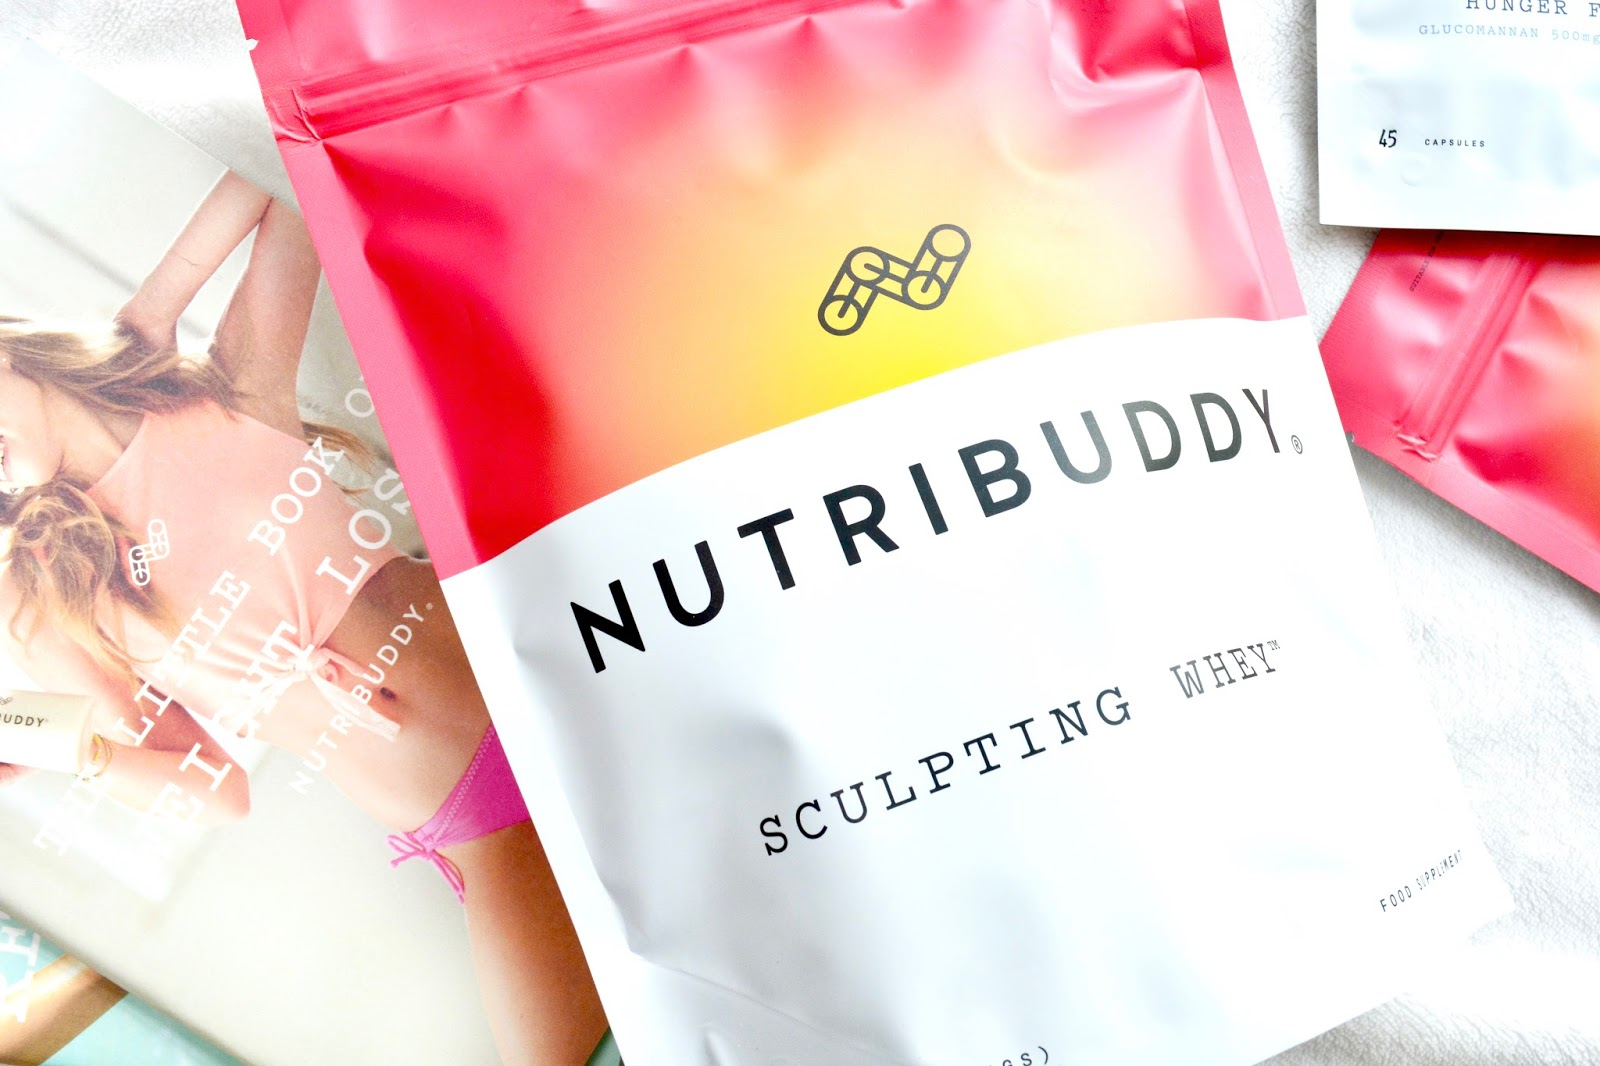 Nutribuddy, Weight loss, Shakes, Healthy, Lifestyle, Lifestyle Blogger, Health Shakes, Nutribuddy Weight Loss Kit, Weight Loss, Fitness